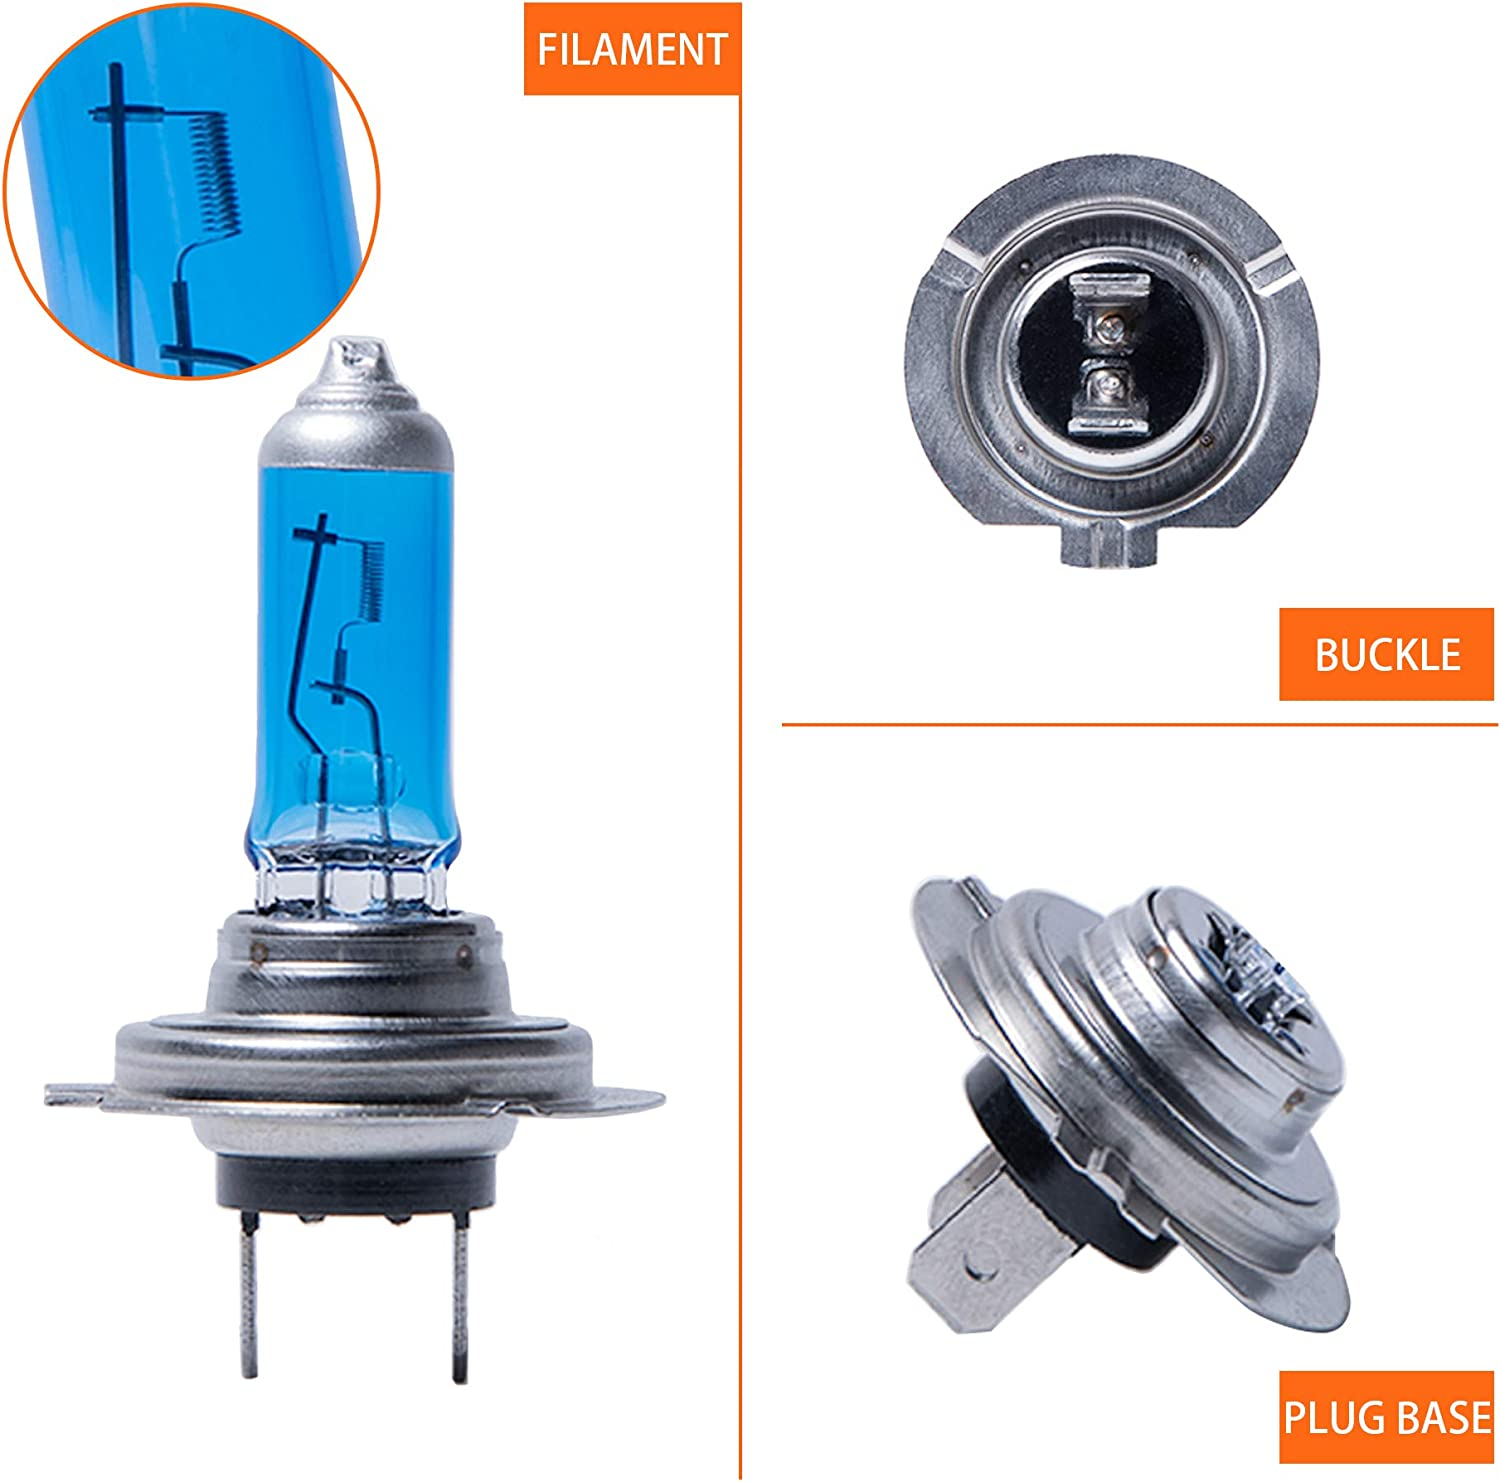 High Performance Long Life 12V//55W 3200 Lumens 5500K White Light for High Beam Low Beam and Fog Replacement Bulb Pack of 2 LIBRALUX H7 Halogen Headlight Bulb Ultra